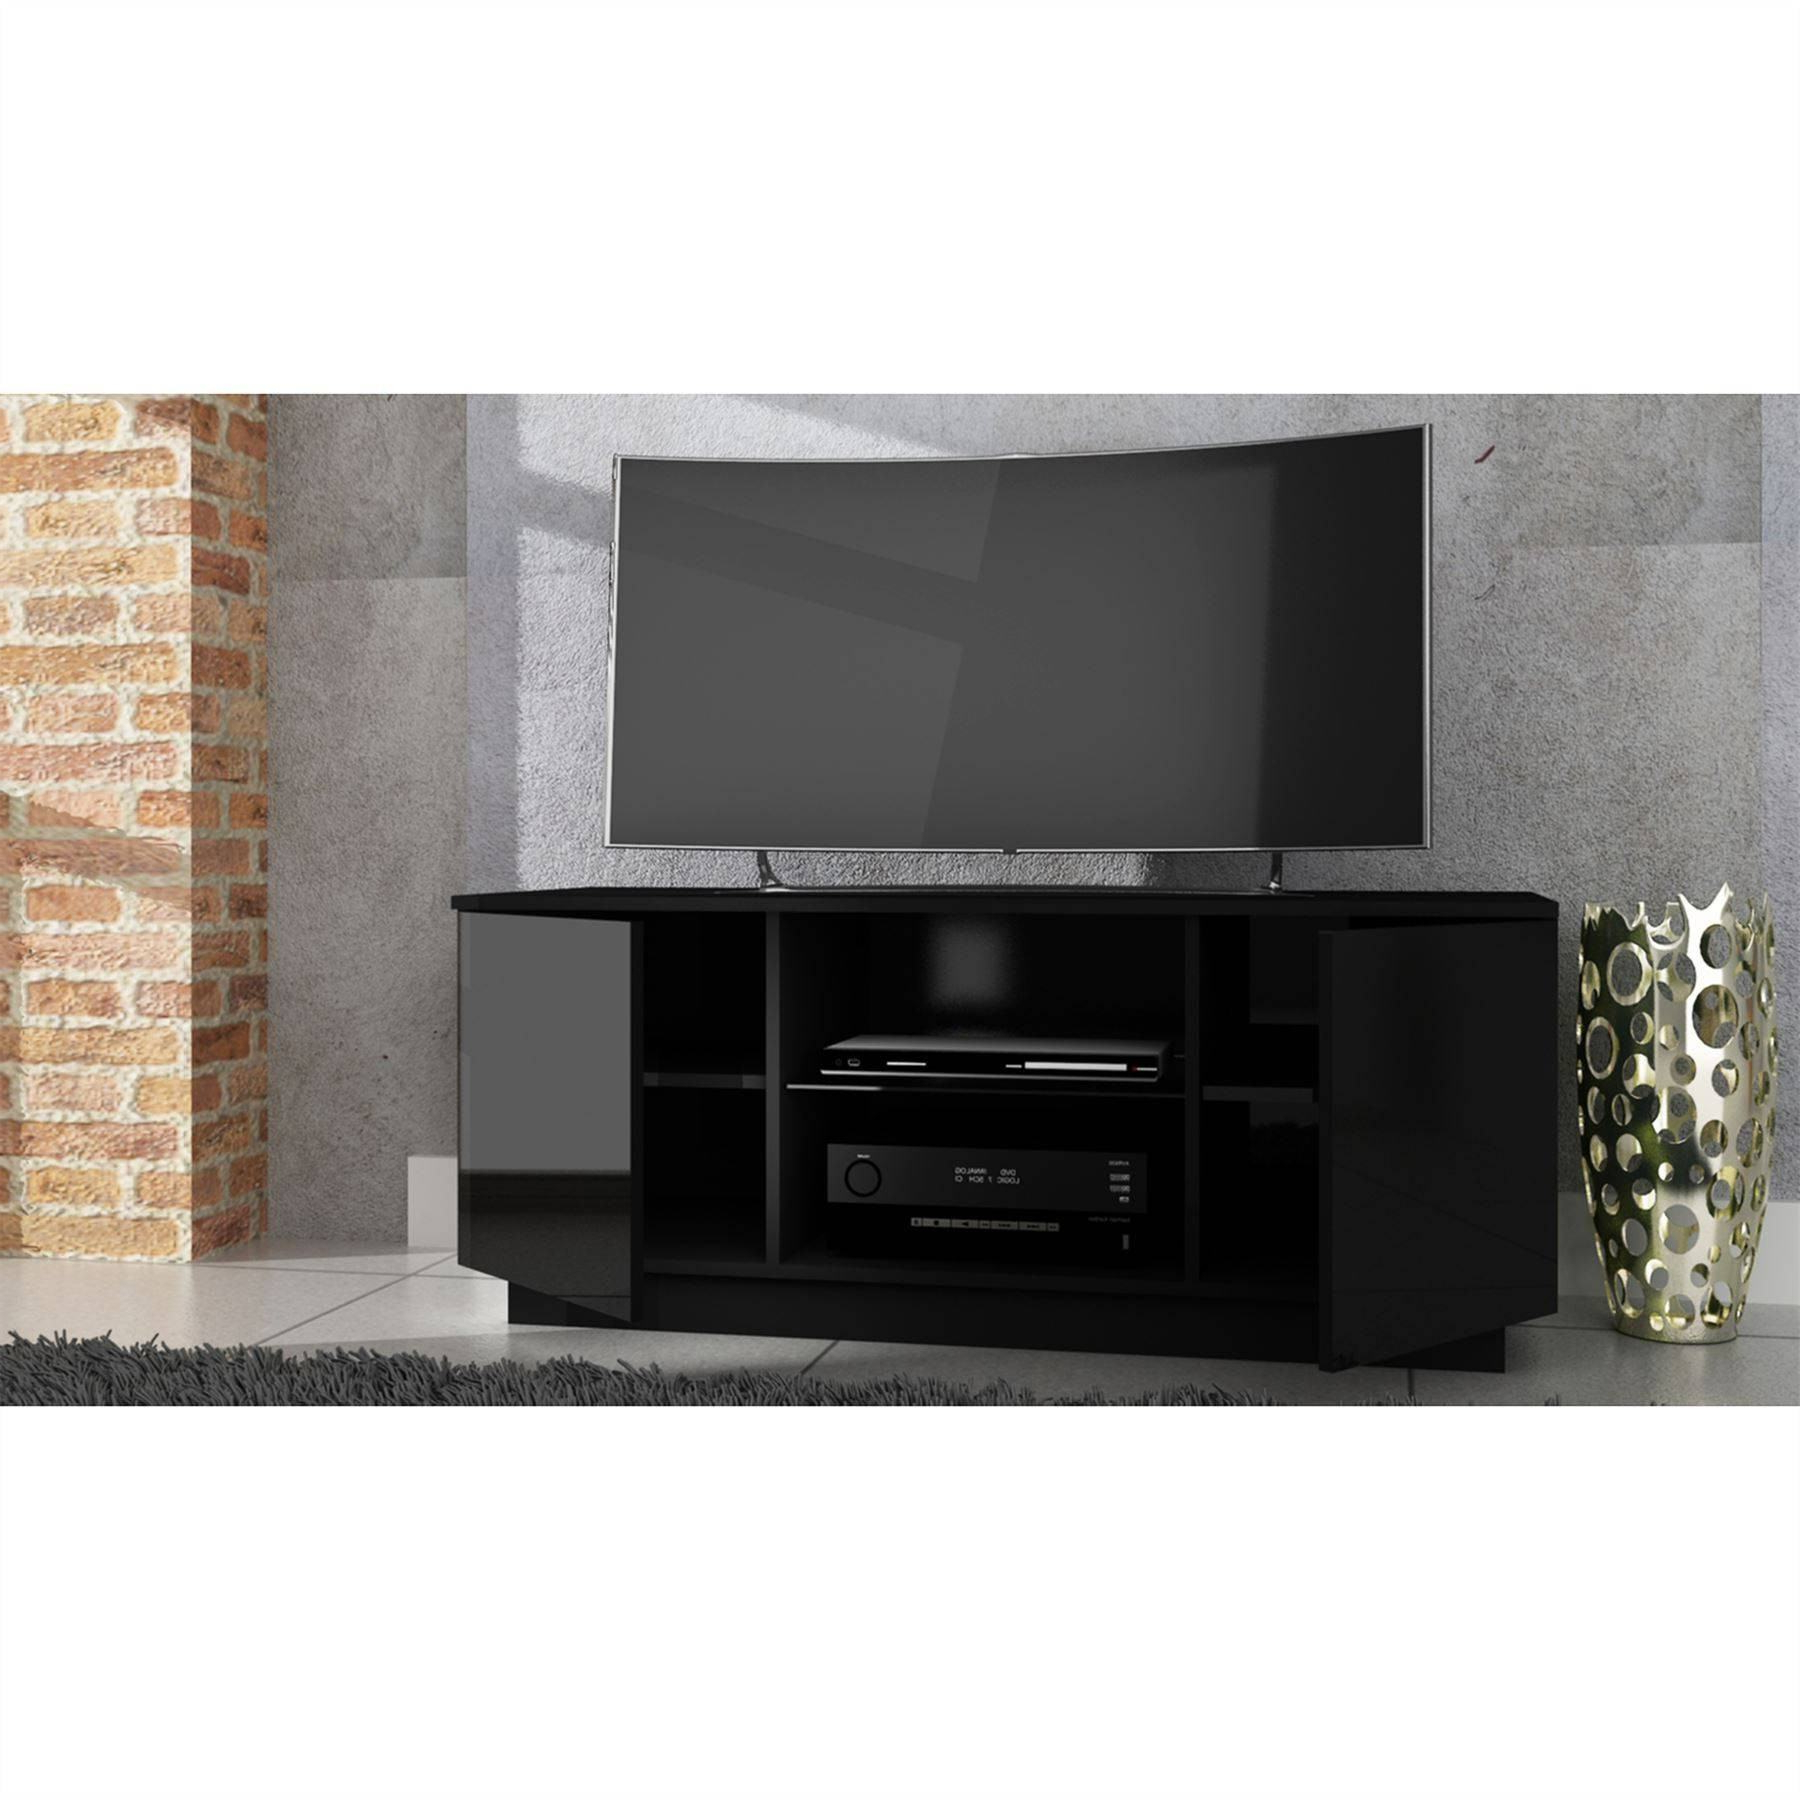 Current Wonderful Best 15 Of Black High Gloss Corner Tv Unit Elevated Tv Within Black Gloss Corner Tv Stand (View 14 of 20)